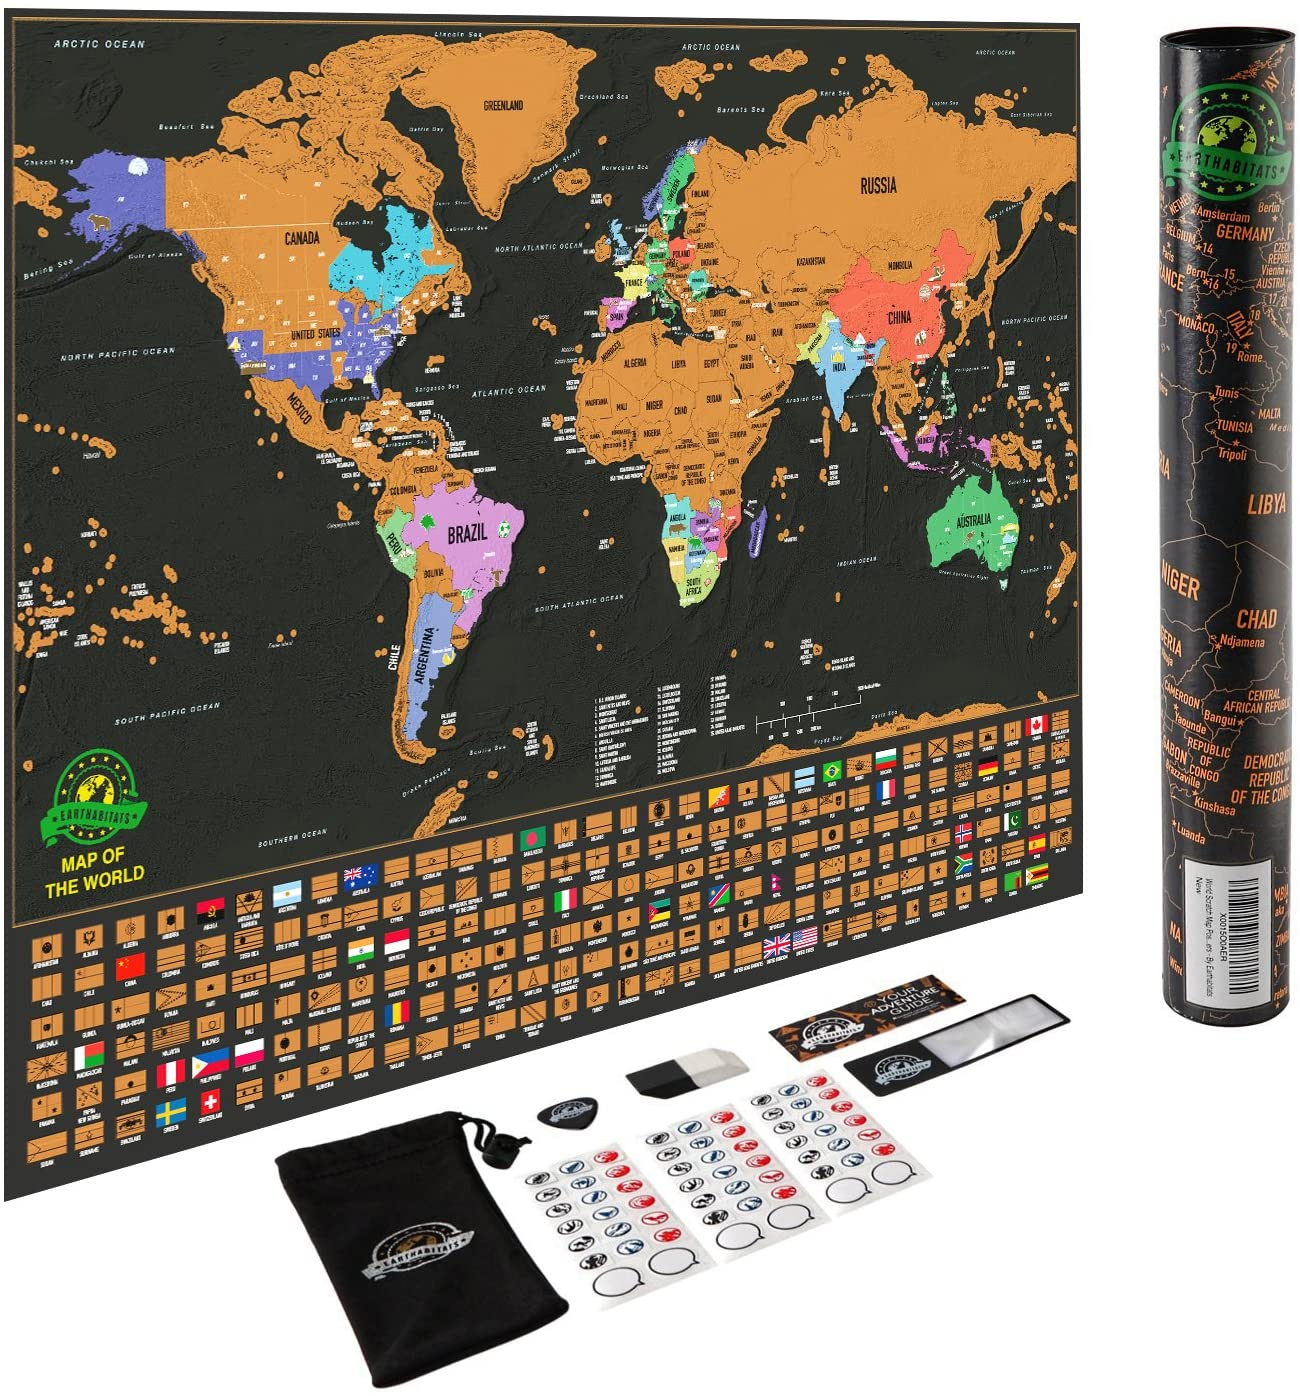 Scratch Off World Map Poster – Deluxe Travel Map, World Map Scratch Off with US States and Country Flags, Tracks Where You Have Been, Full Accessories Set, Perfect Gift for Travelers, by Earthabitats